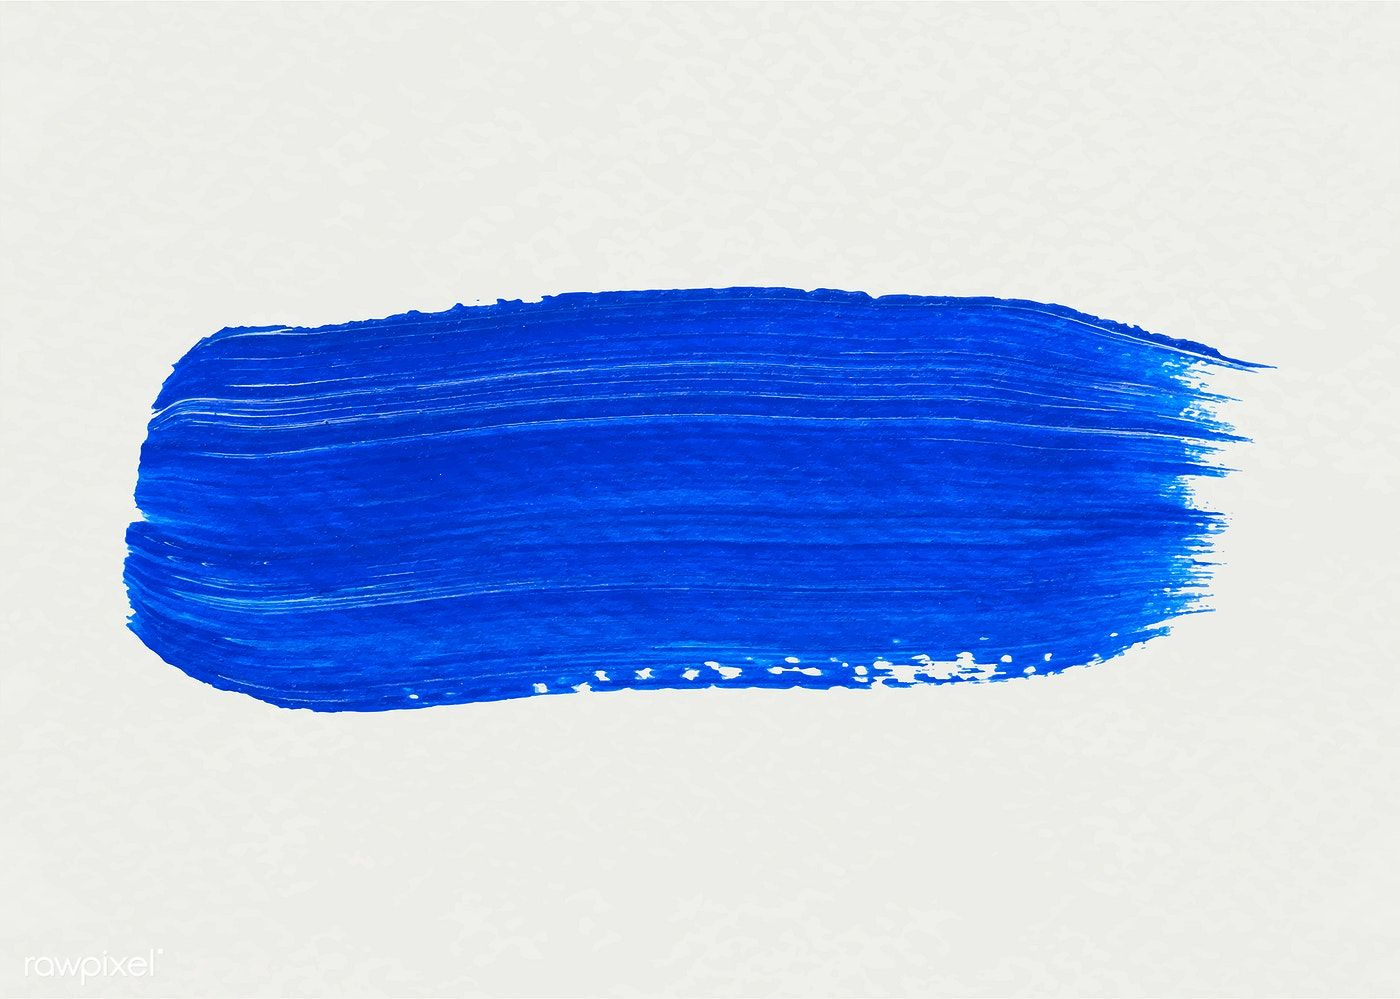 Blue Acrylic Brush Stroke Vector Free Image By Rawpixel Com Adj